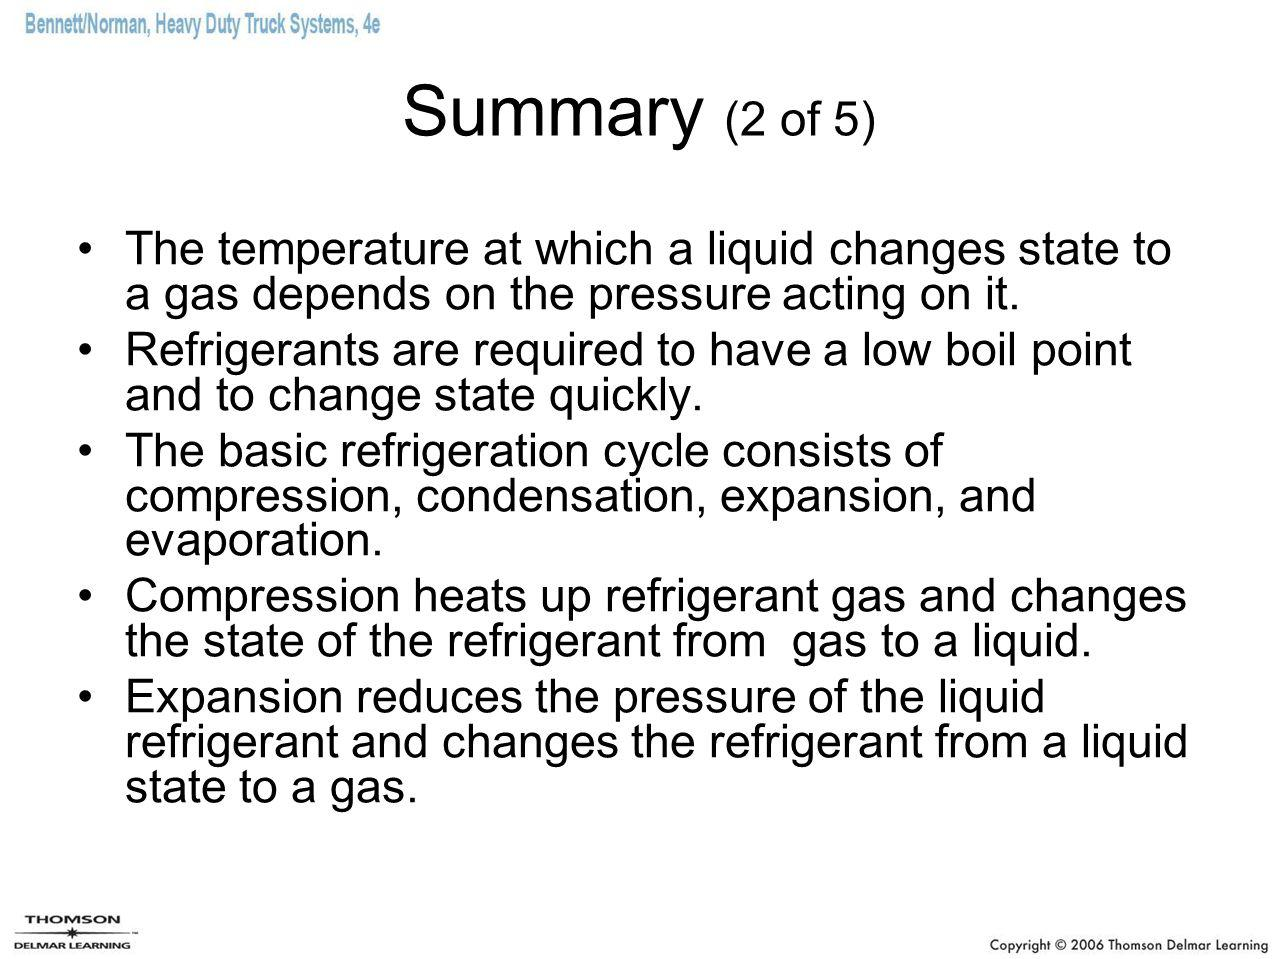 Summary (2 of 5) The temperature at which a liquid changes state to a gas depends on the pressure acting on it.